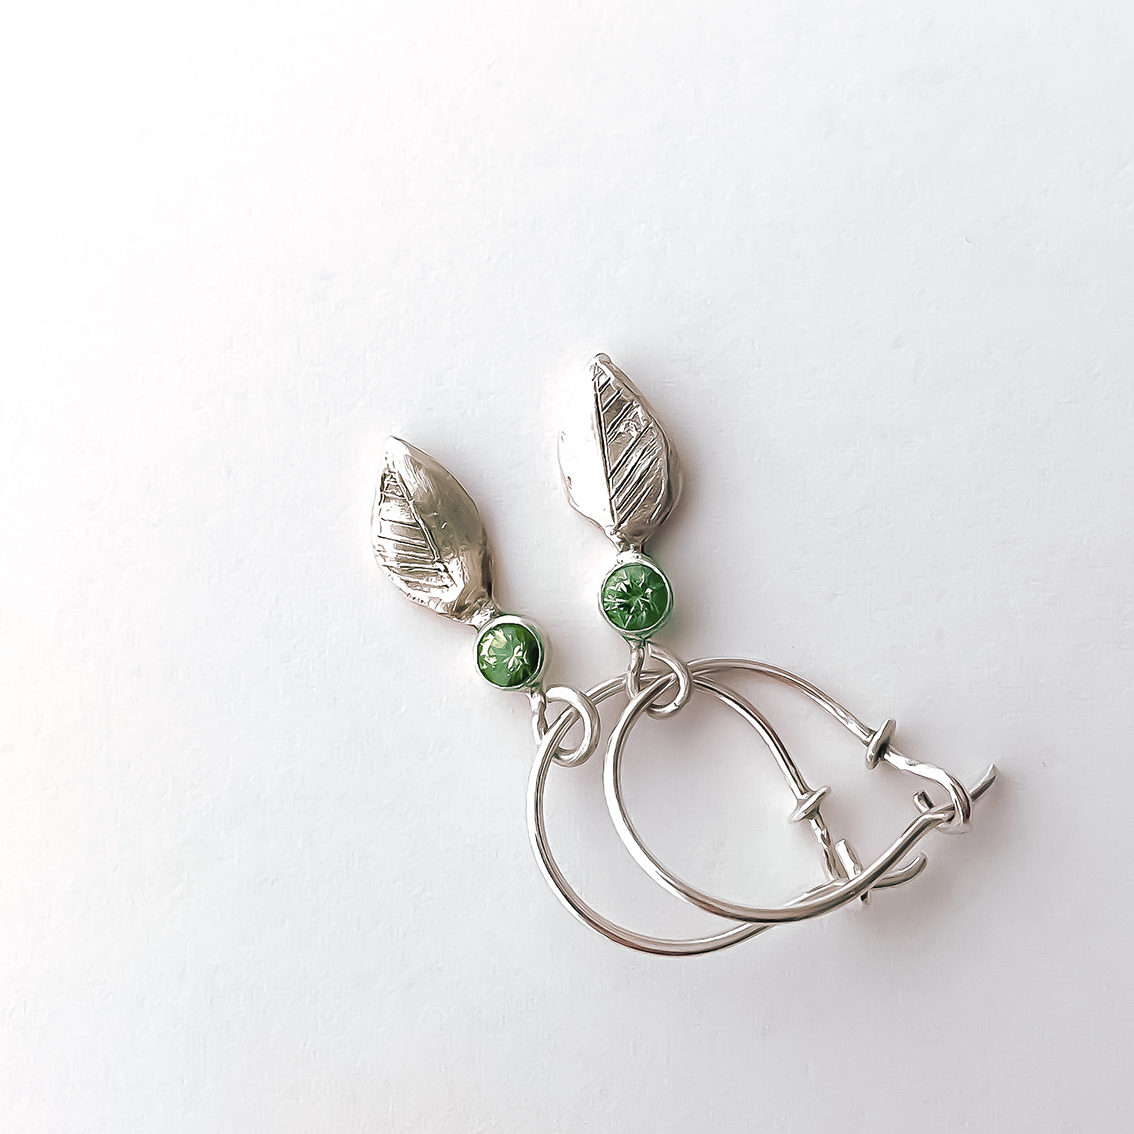 Hoop Earrings with Charms | Leaf Charms | Sterling + Peridots